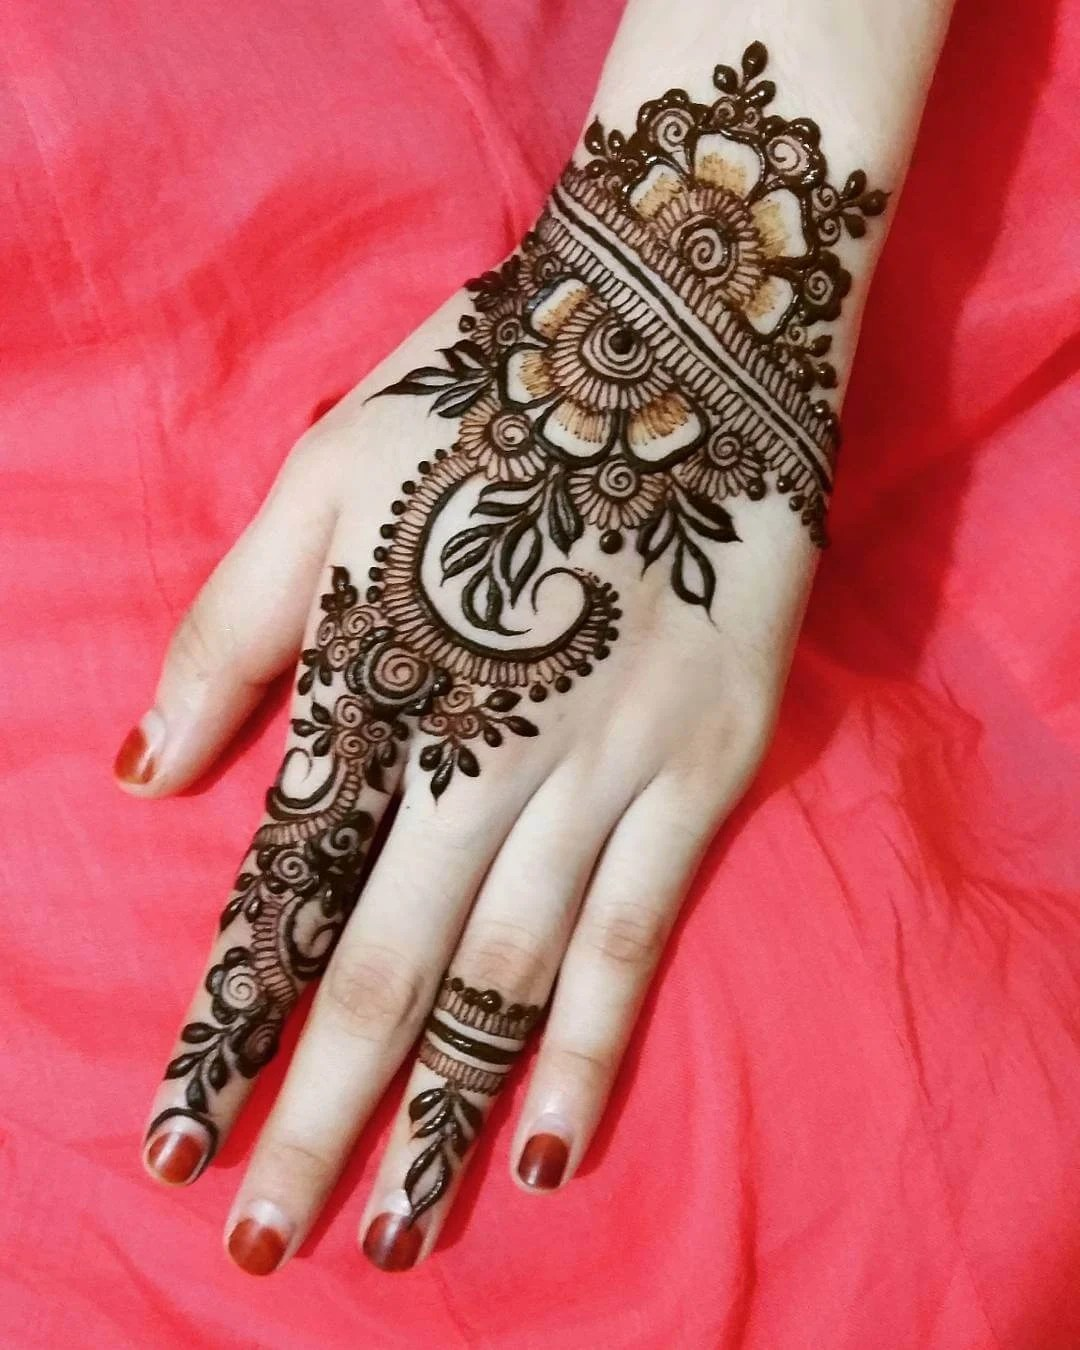 Best wordpress plugins for designers that will help you to create a great website using wordpress cms. Cute Arabic Mehndi Designs 2021 With Videos For Hands Daily Infotainment